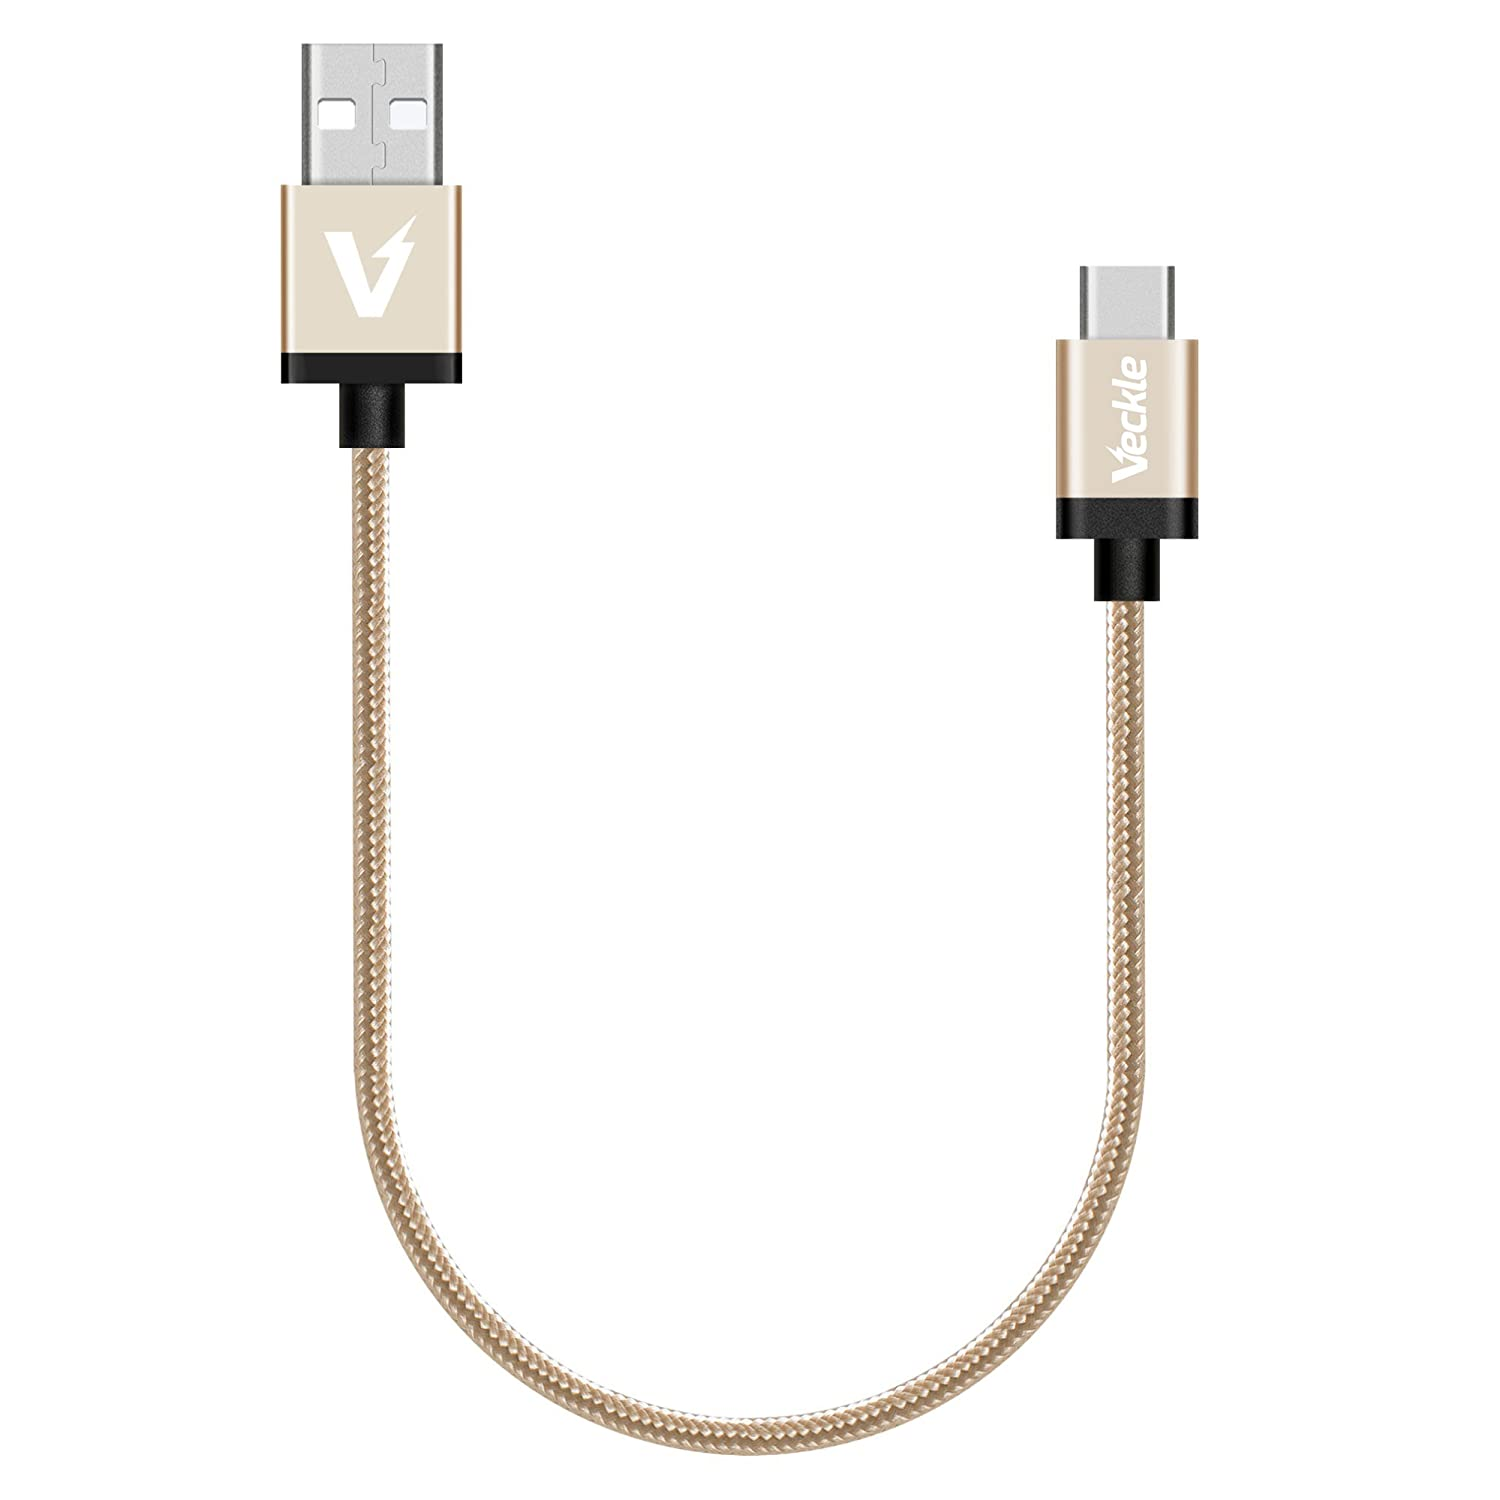 USB C Cable, Veckle Type C 1ft Braided Cable for Nintendo Switch, Samsung Galaxy S8, LG G5, OnePlus 2, Nexus 6P, 5X, Lumia 950, Nokia N1, Nextbit Robin and Other USB C Devices, Gold